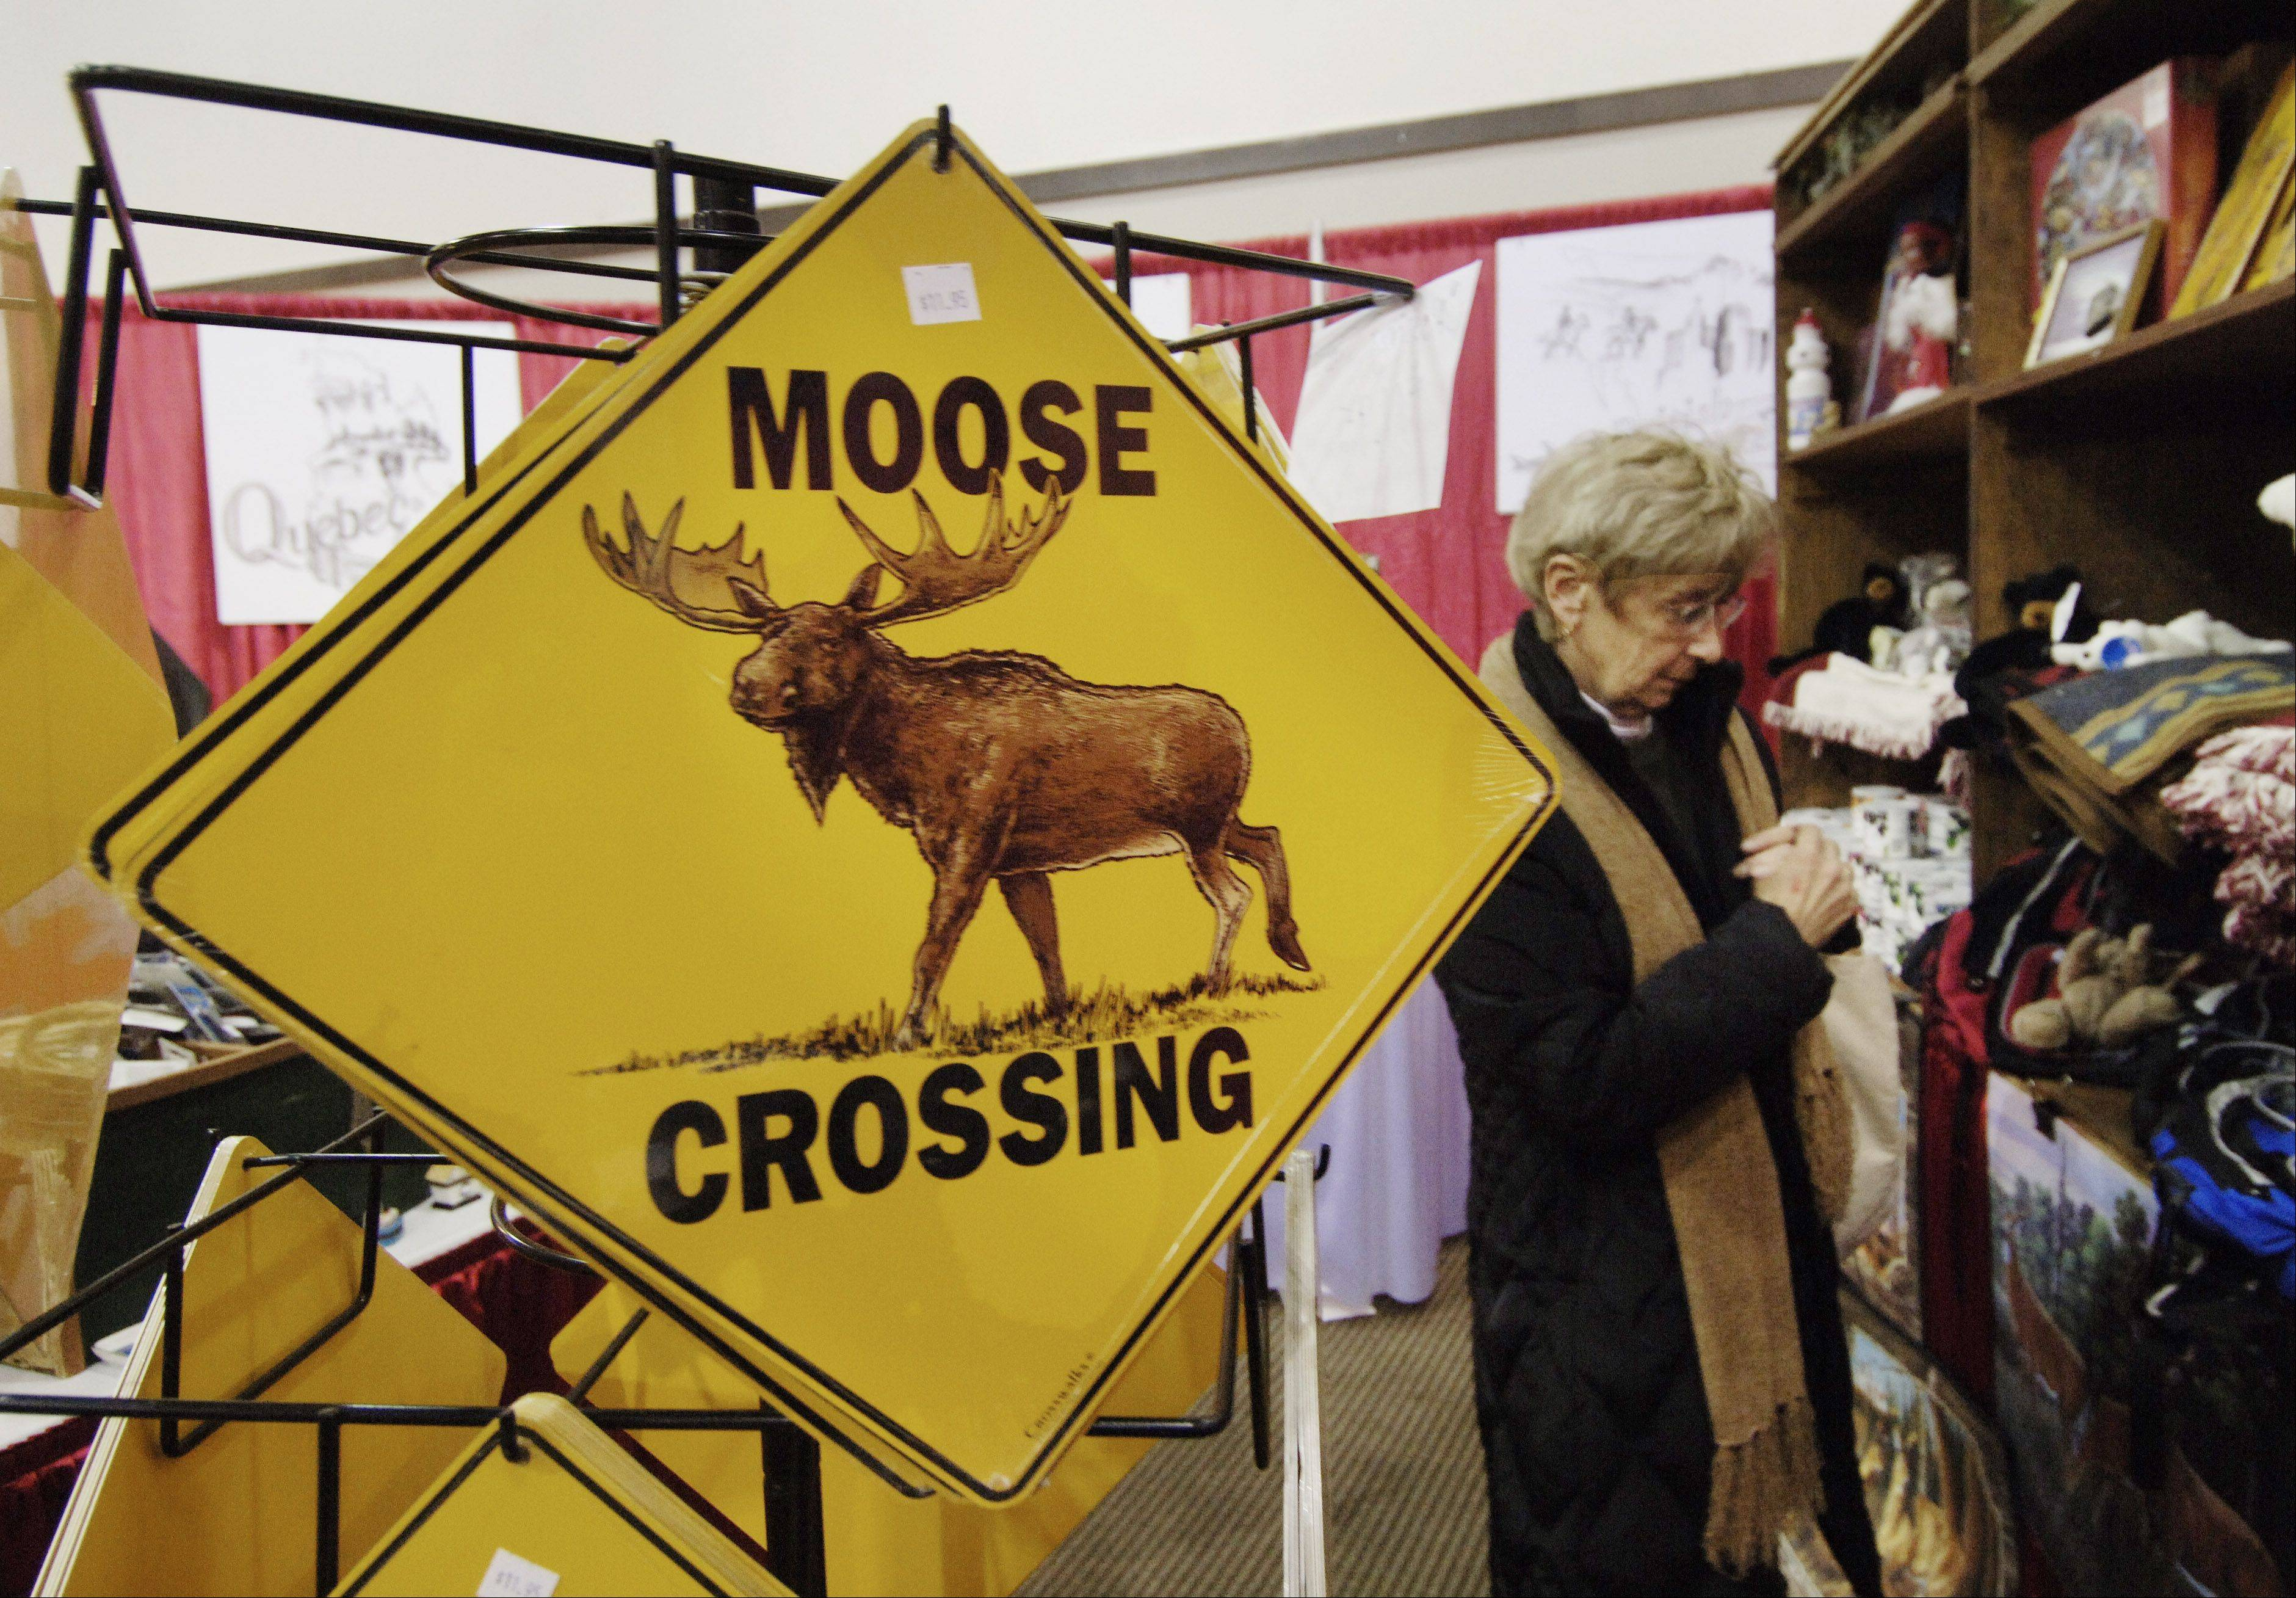 Barbara Bradley of Wheaton browses in the Moose Bay Trading Company at a previous All-Canada Show at the Pheasant Run Mega Center in St. Charles. The show offers visitors opportunities to gather information and book vacations to Canada. The show runs Thursday, Jan. 10, to Sunday, Jan. 13.